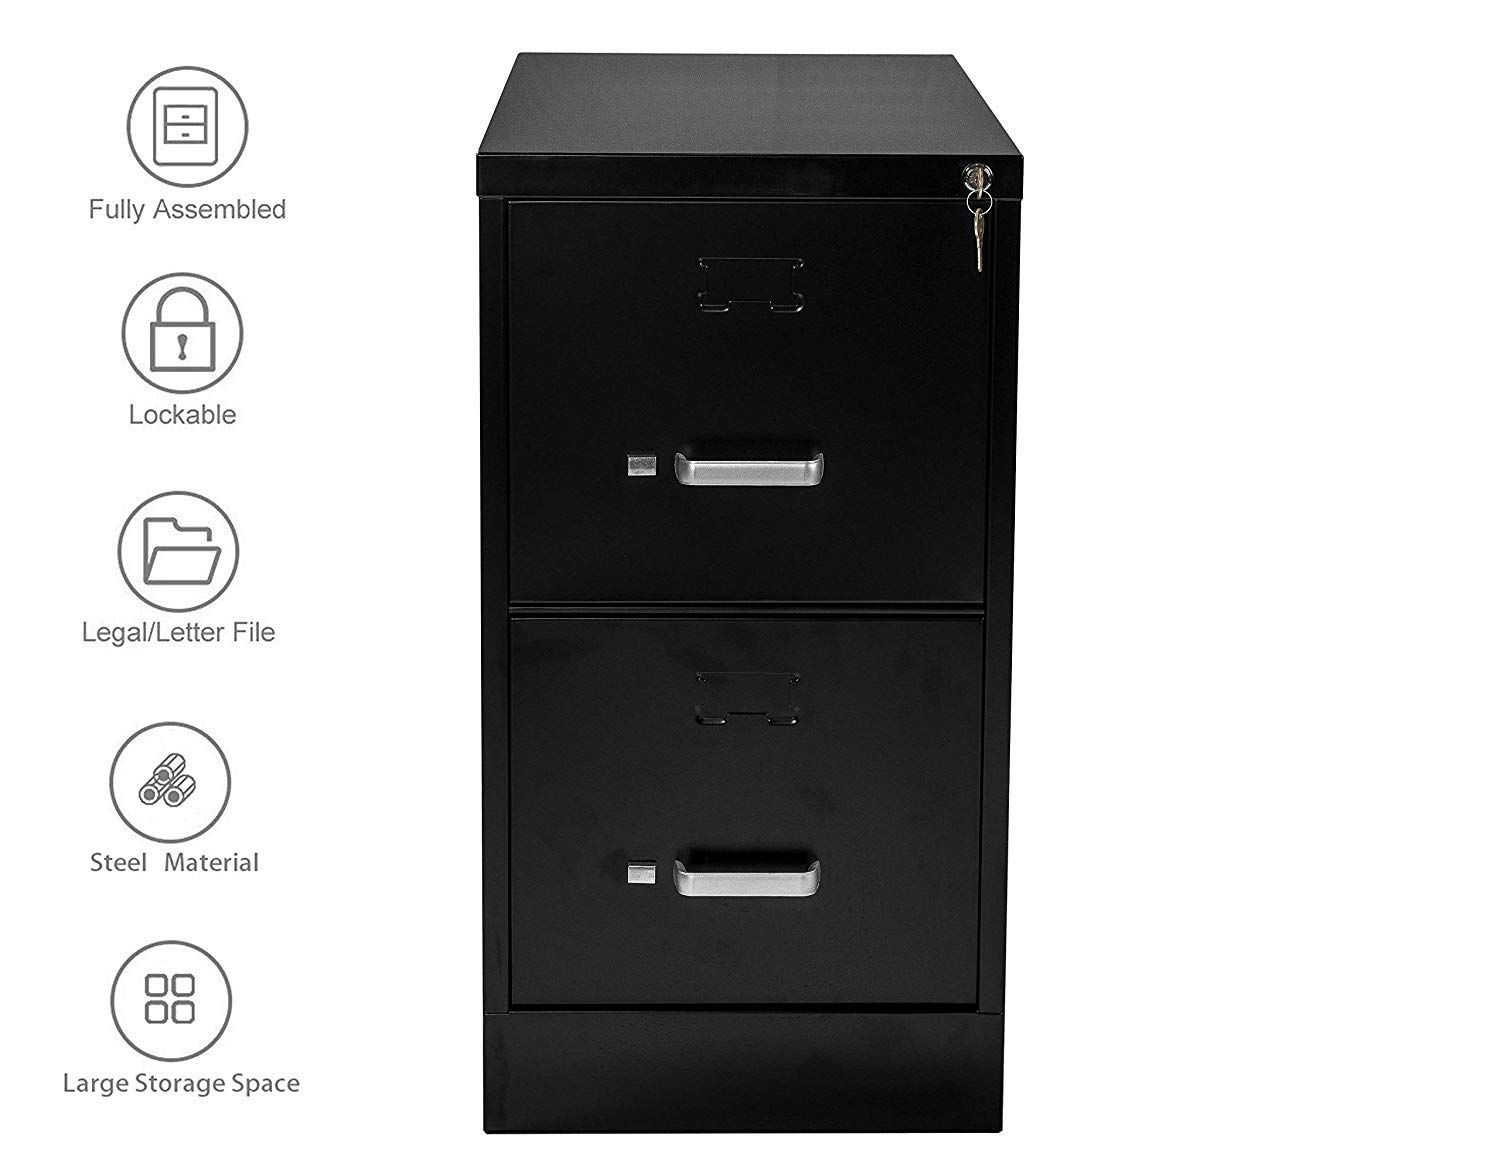 Henlus 2 Drawer Flie Cabinet with Lock Fully Assembled Metal Filing Cabinets for Home Office (Black, 2 Drawer)